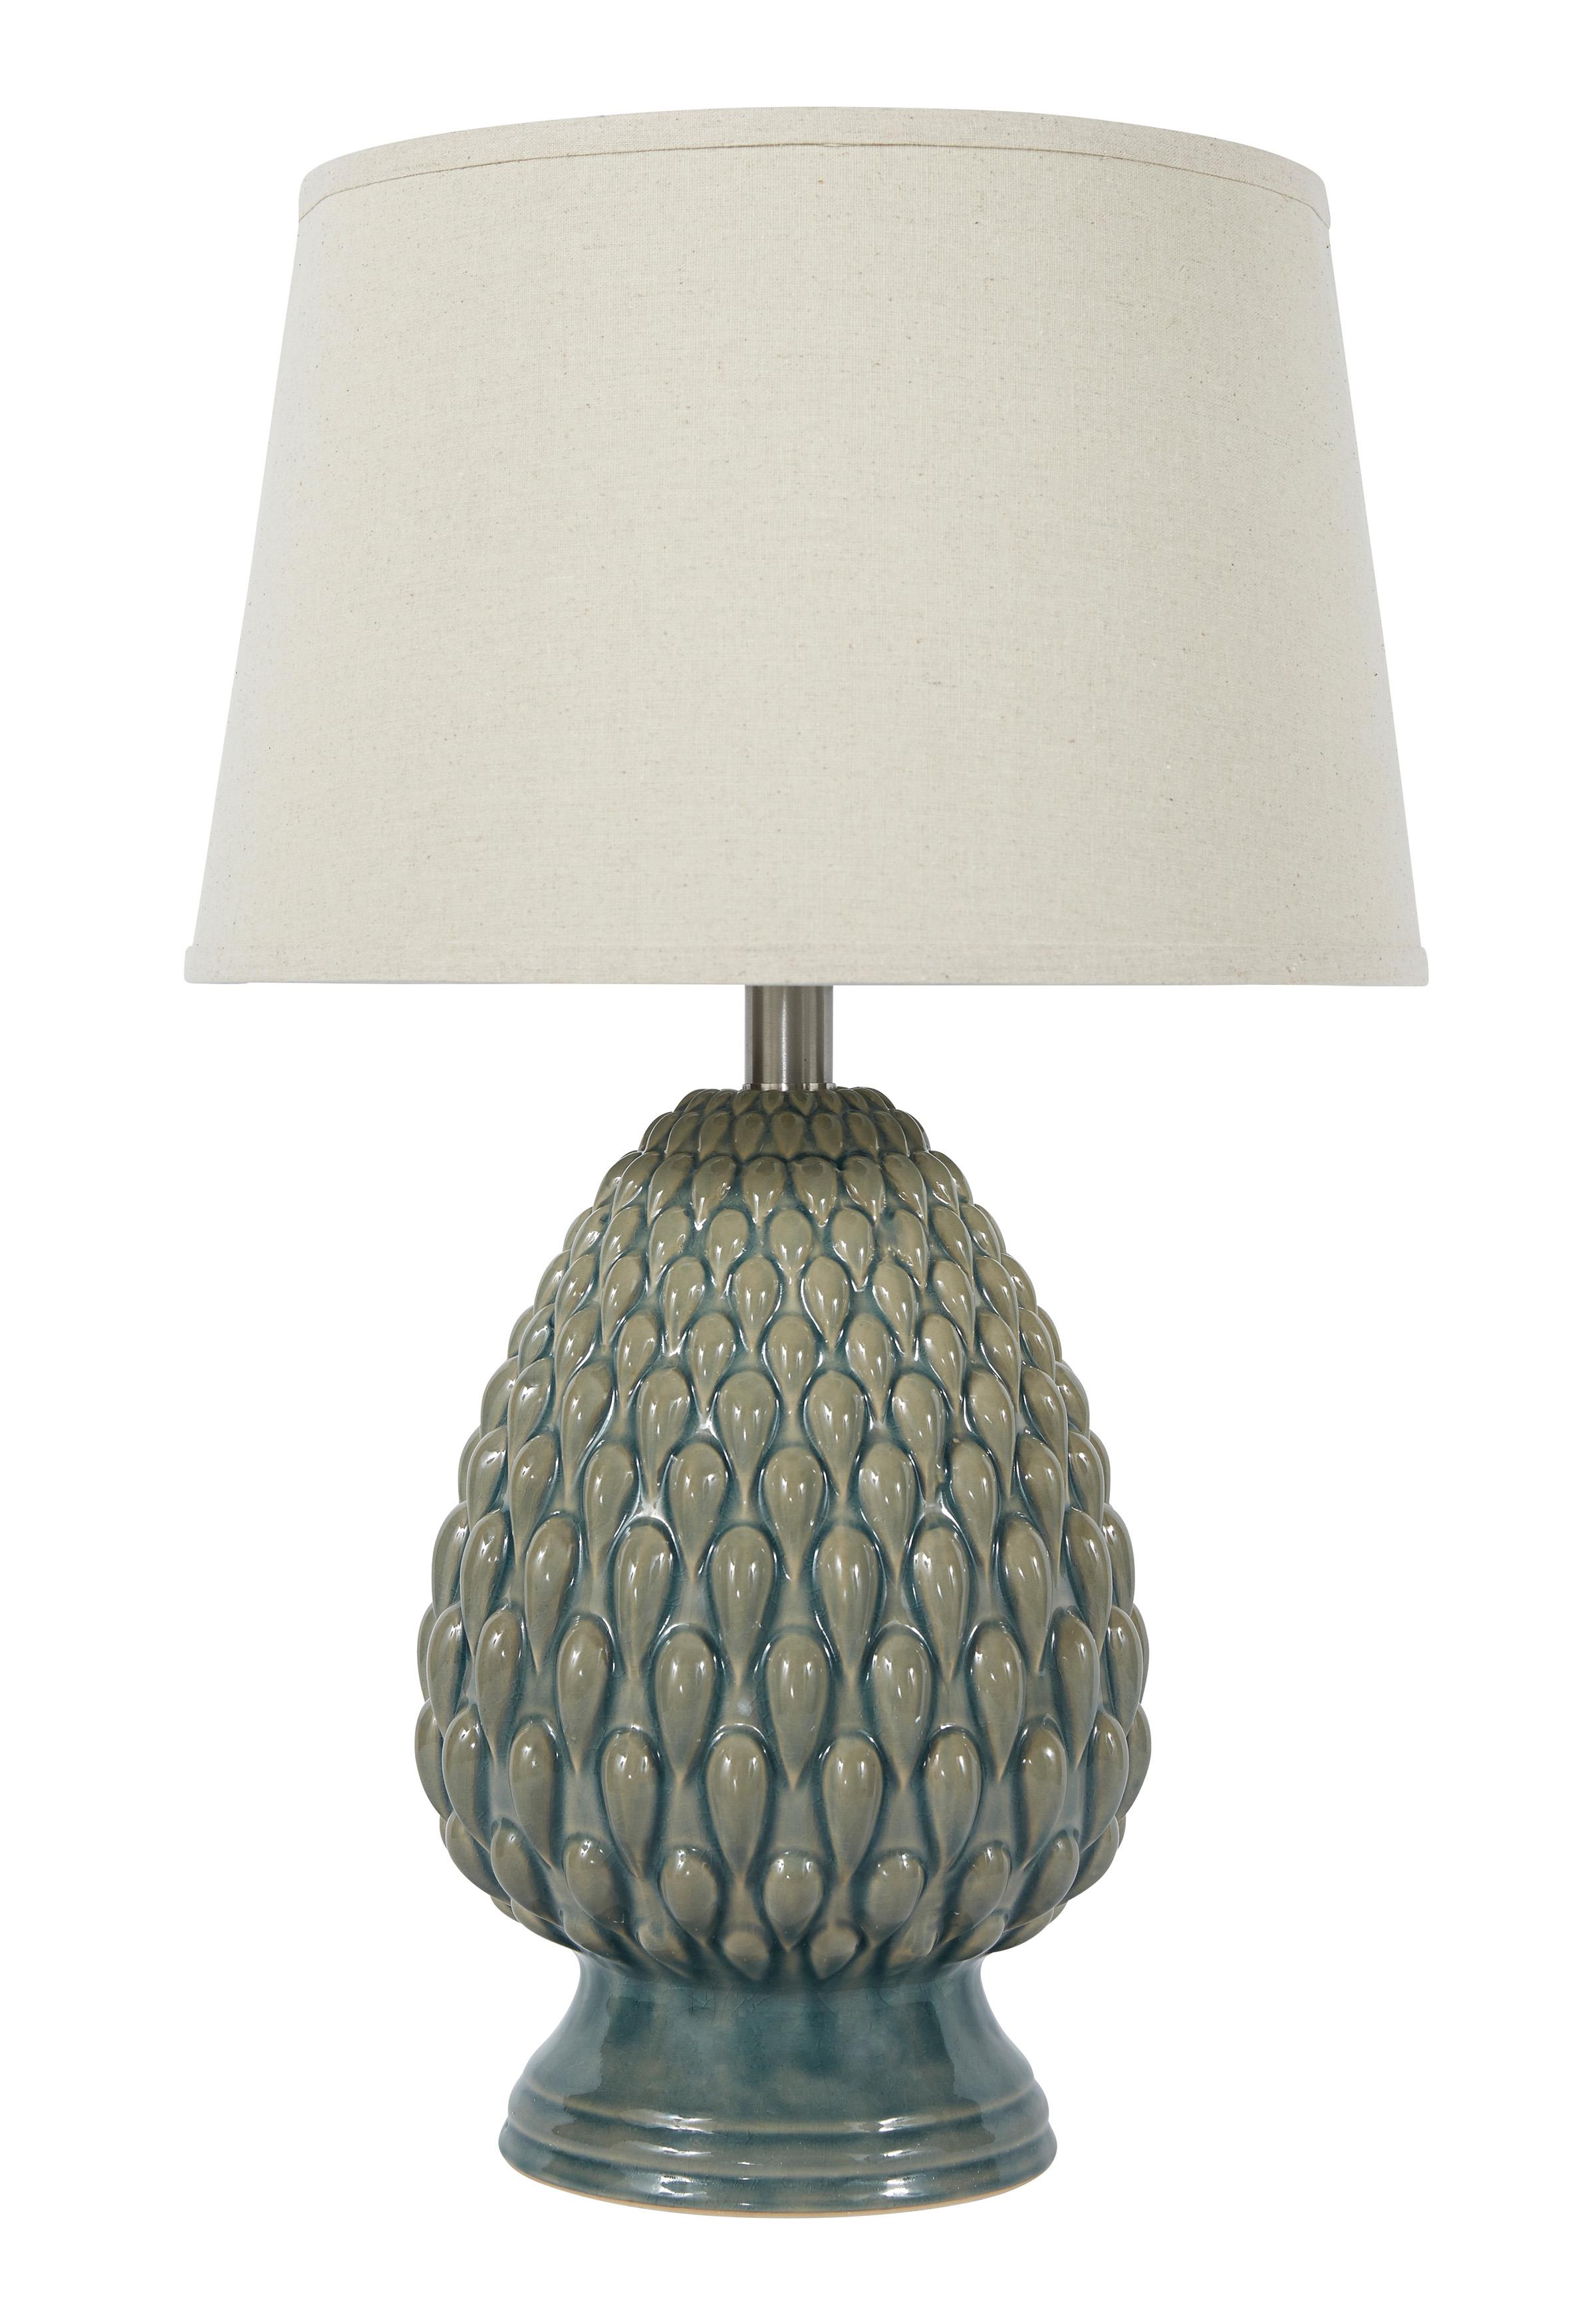 Signature Design by Ashley Lamps - Vintage Style Saidee - Teal Ceramic Table Lamp - Item Number: L100264